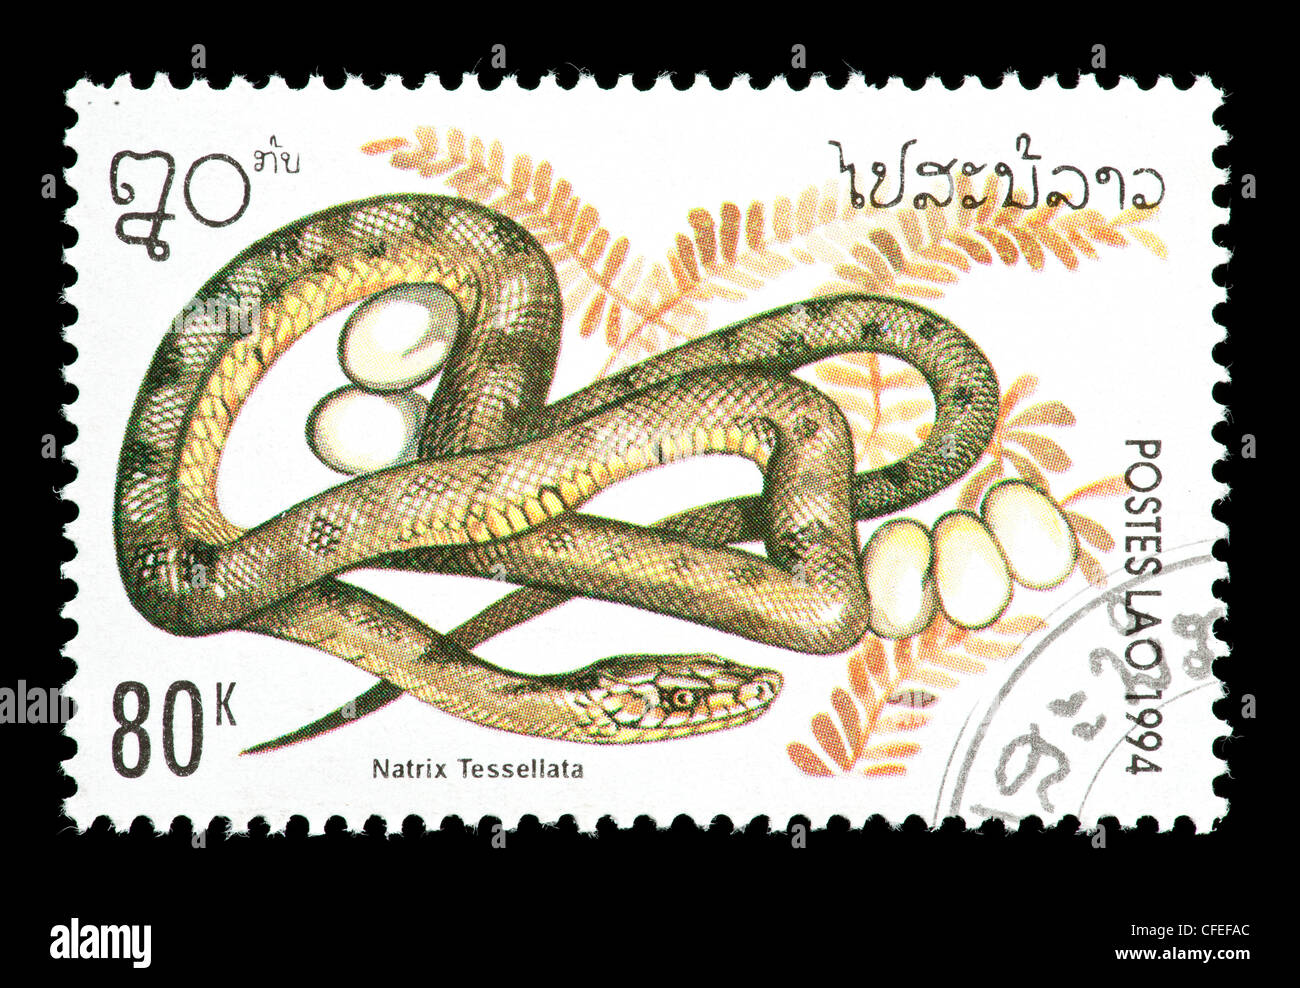 Postage stamp from Laos depicting a dice snake (Natrix tessellata) - Stock Image